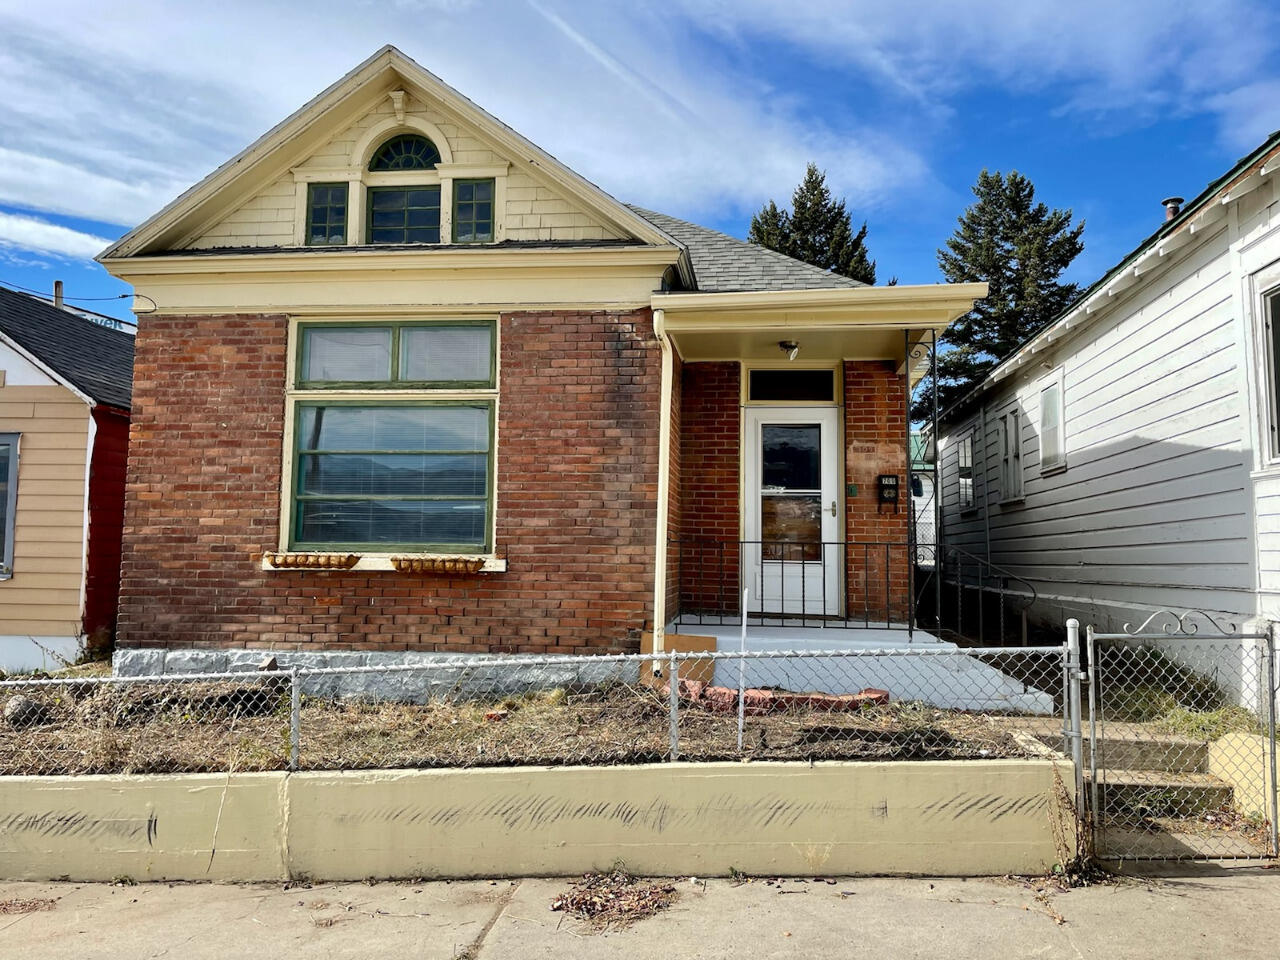 Priced to Sell! Don't miss this opportunity! Cute  2 bedroom 1 bath 1300+ sqft home would make a great starter home or investment property. Recent updates includes new flooring. Call Stacy Oren @ (406) 369-5094 or your real estate professional  Today!